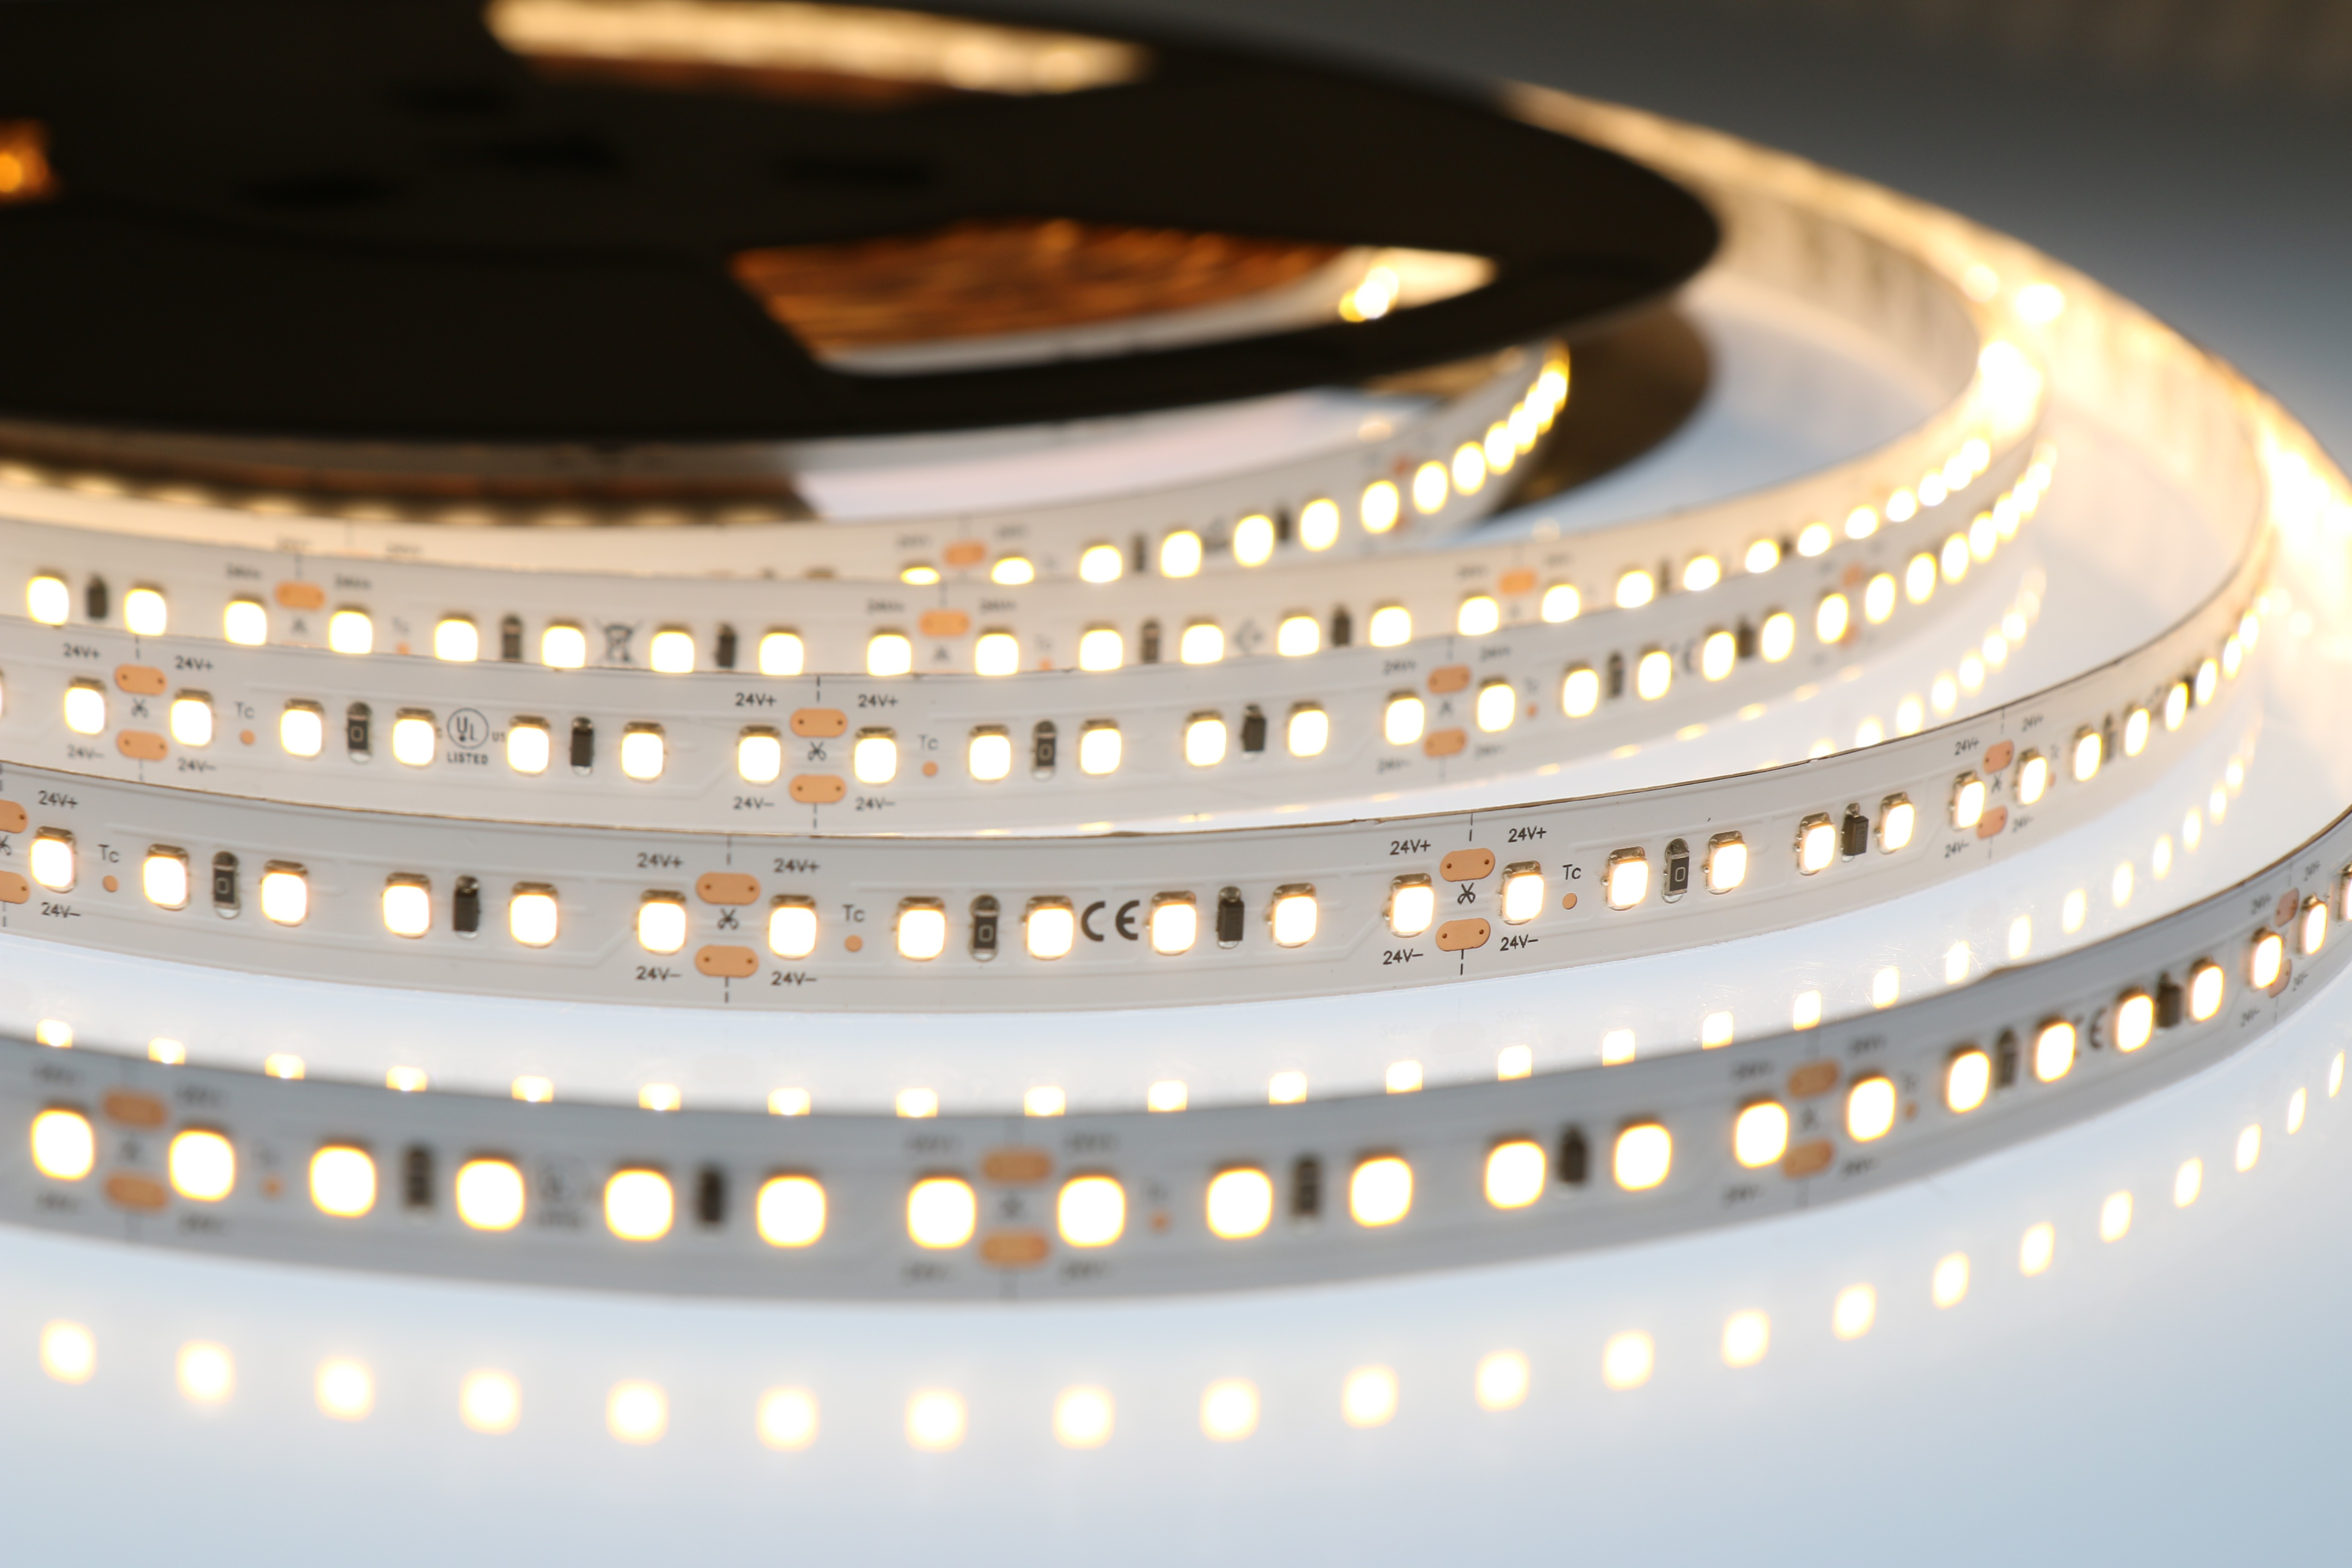 LED лента ULTRA LONG-20m, 2835 120Led/m, 24VDC, 9.6W/m, 3000K, CRI80, 960Lm/m